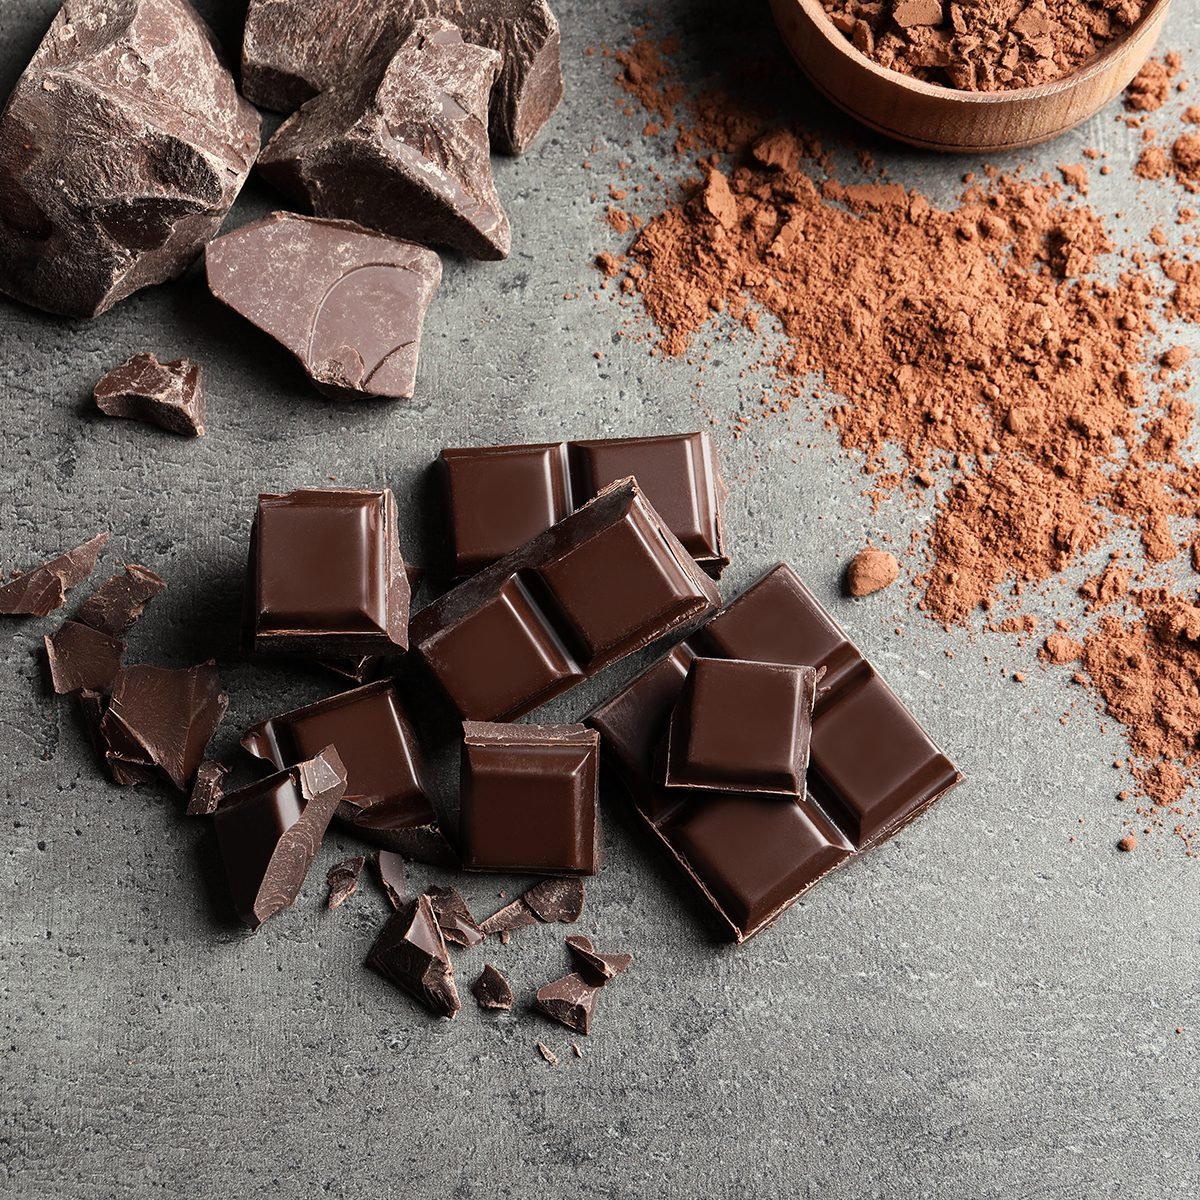 Pieces of chocolate and cocoa powder on grey background